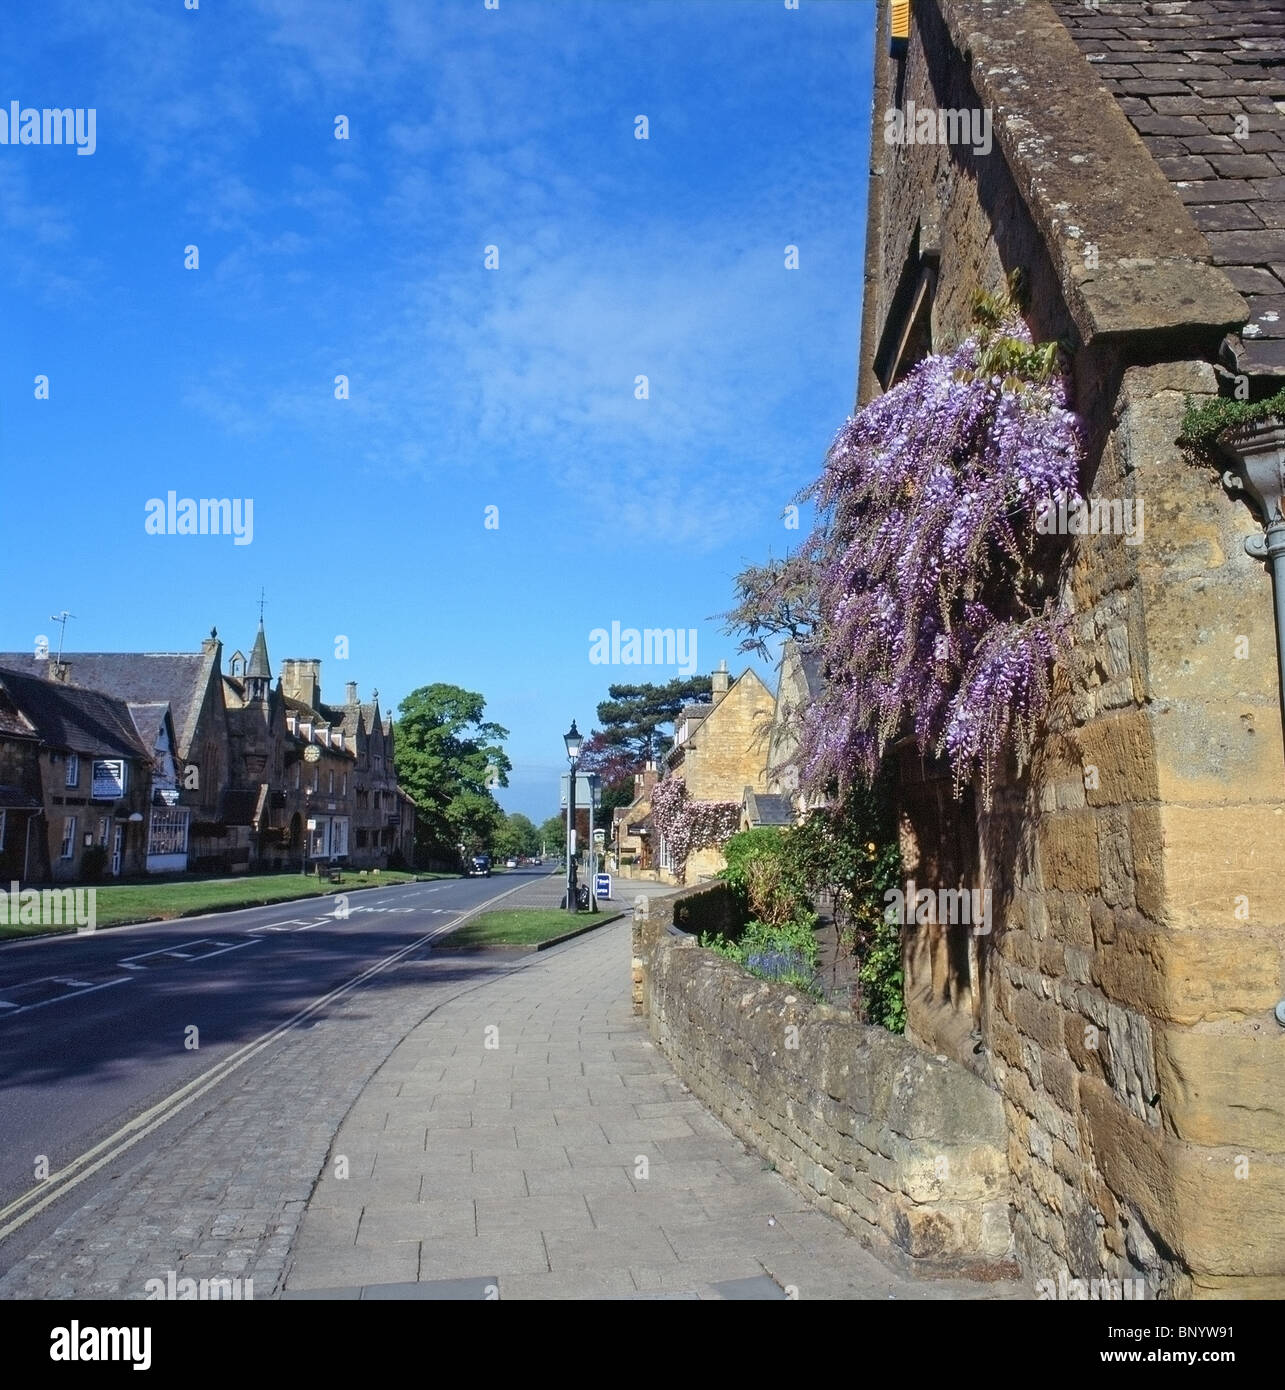 Wisteria In Bloom Stock Photos & Wisteria In Bloom Stock Images - Alamy